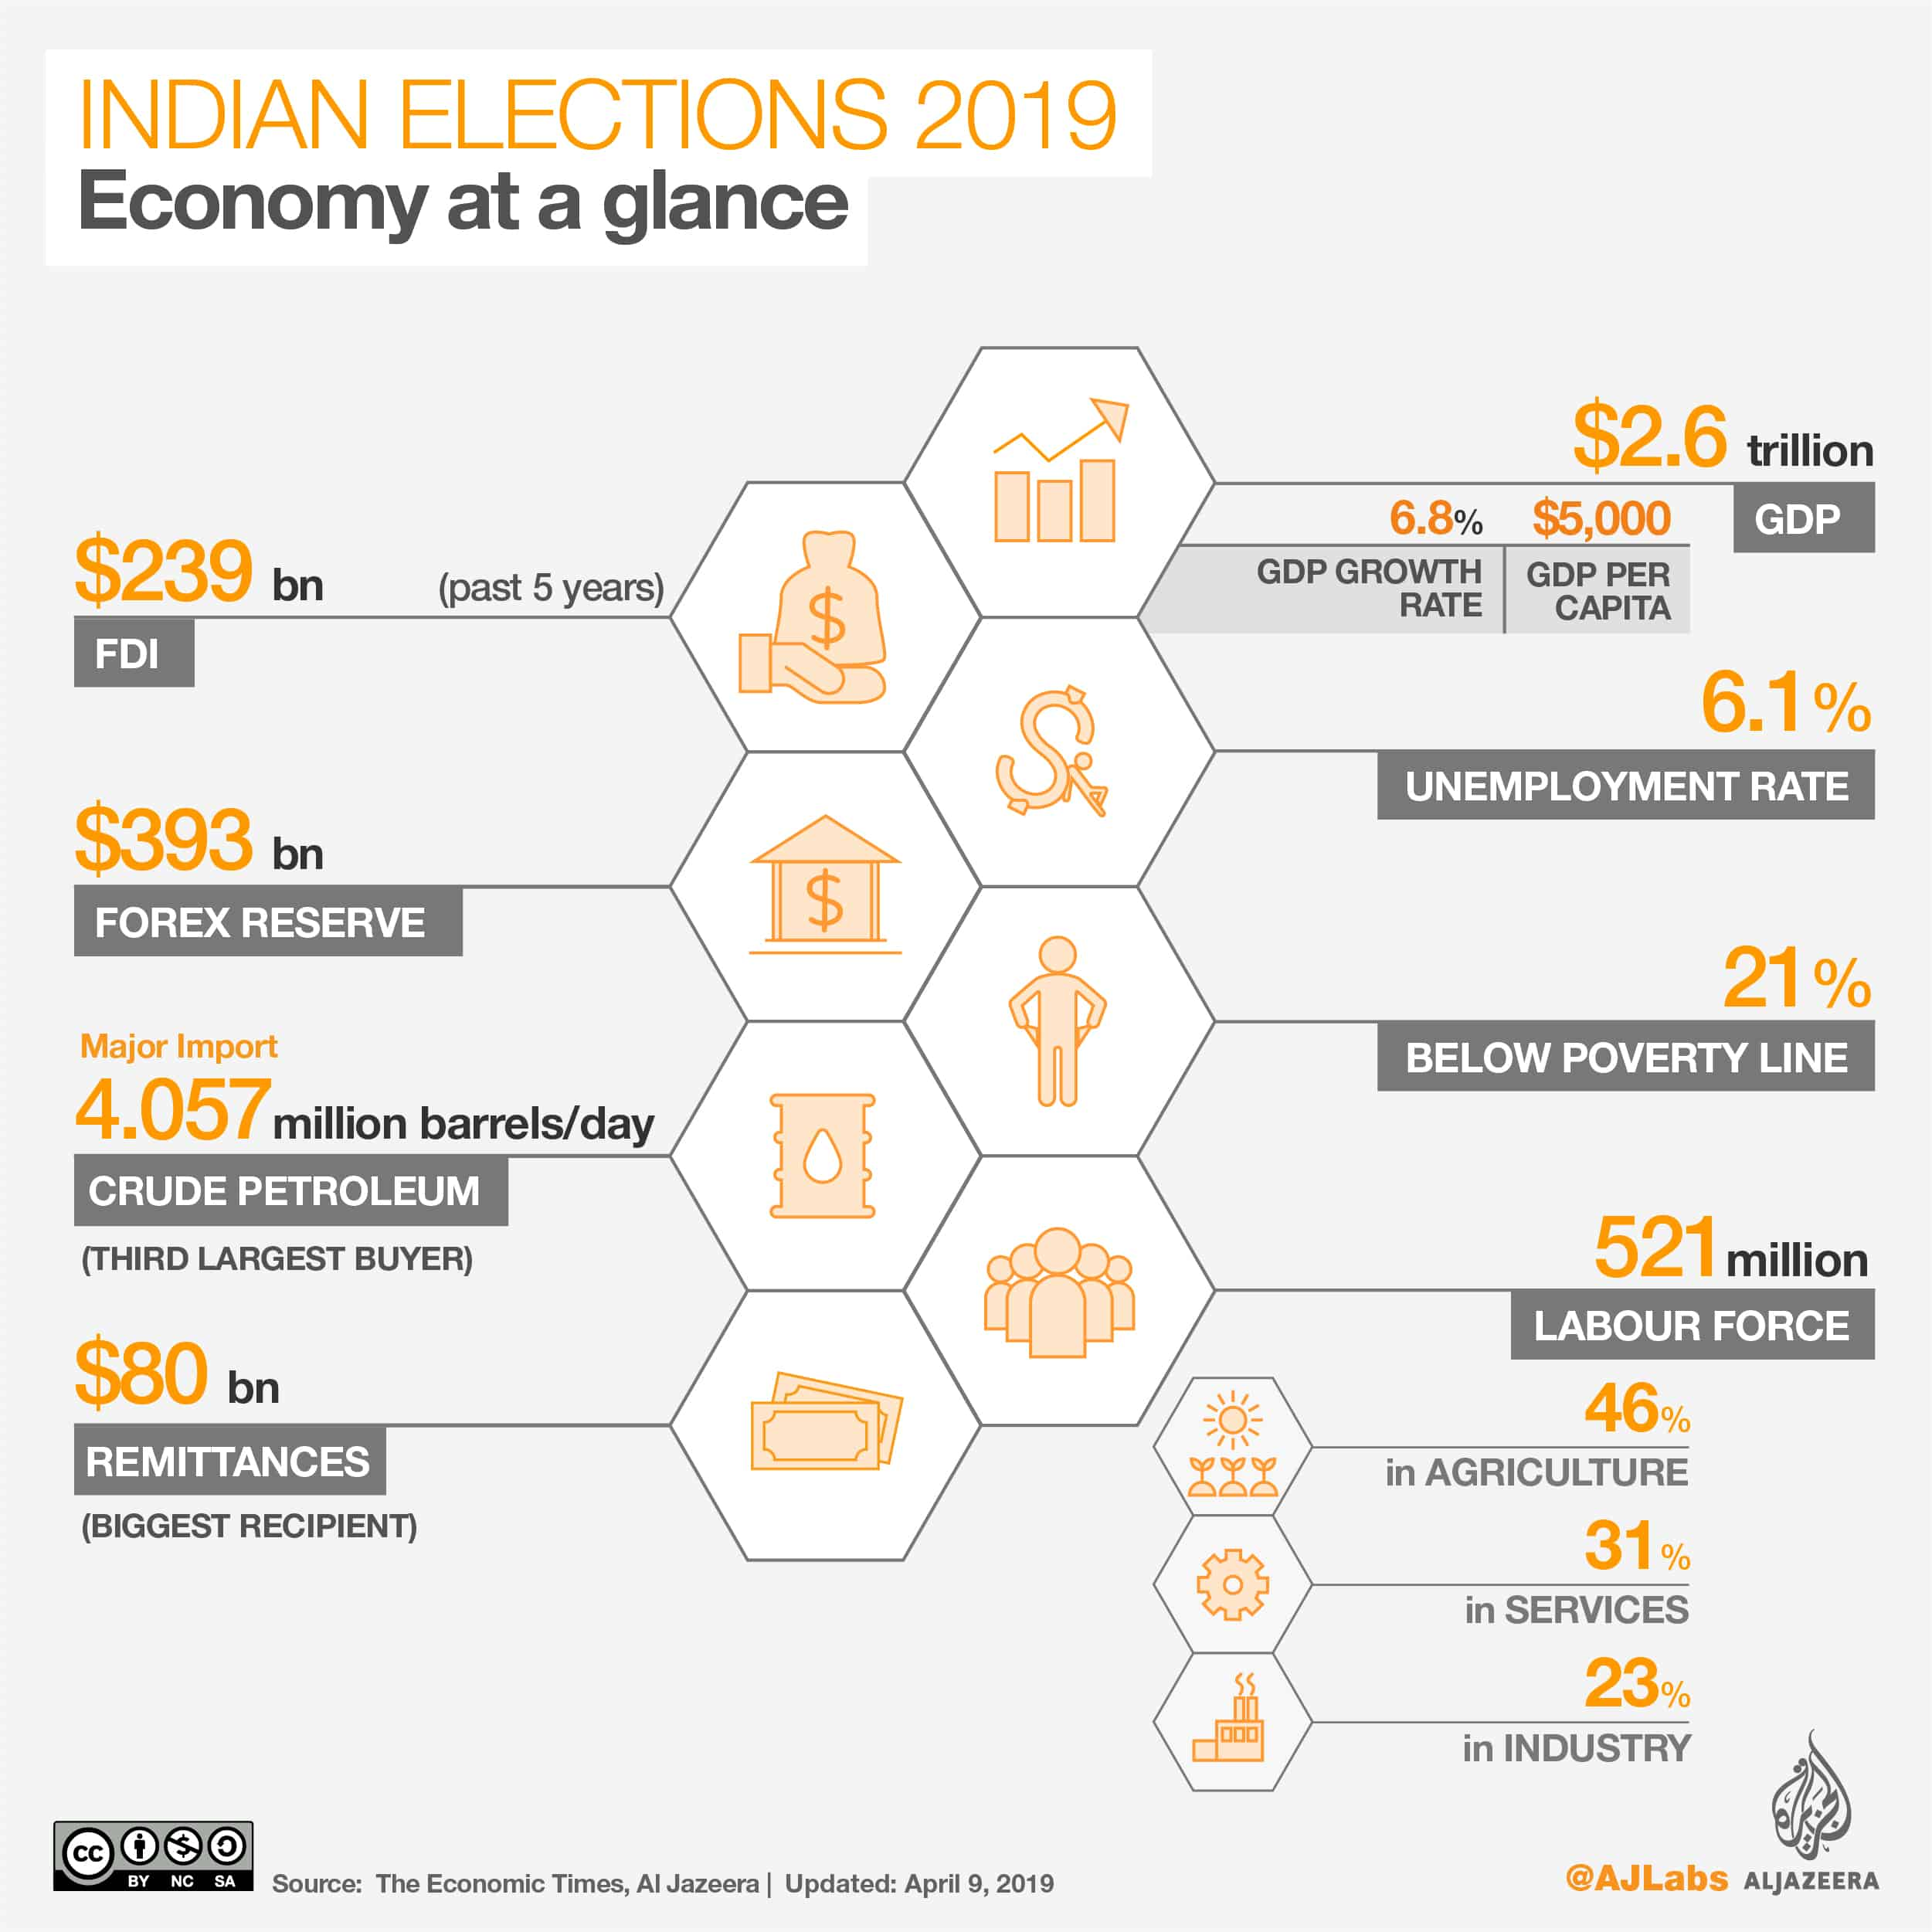 Indian Elections 2019 - Facts and Figures - House of the People Lok Sabha Lower House Elections Results on May 23 - Major Parties and Symbol - Economy at Glance